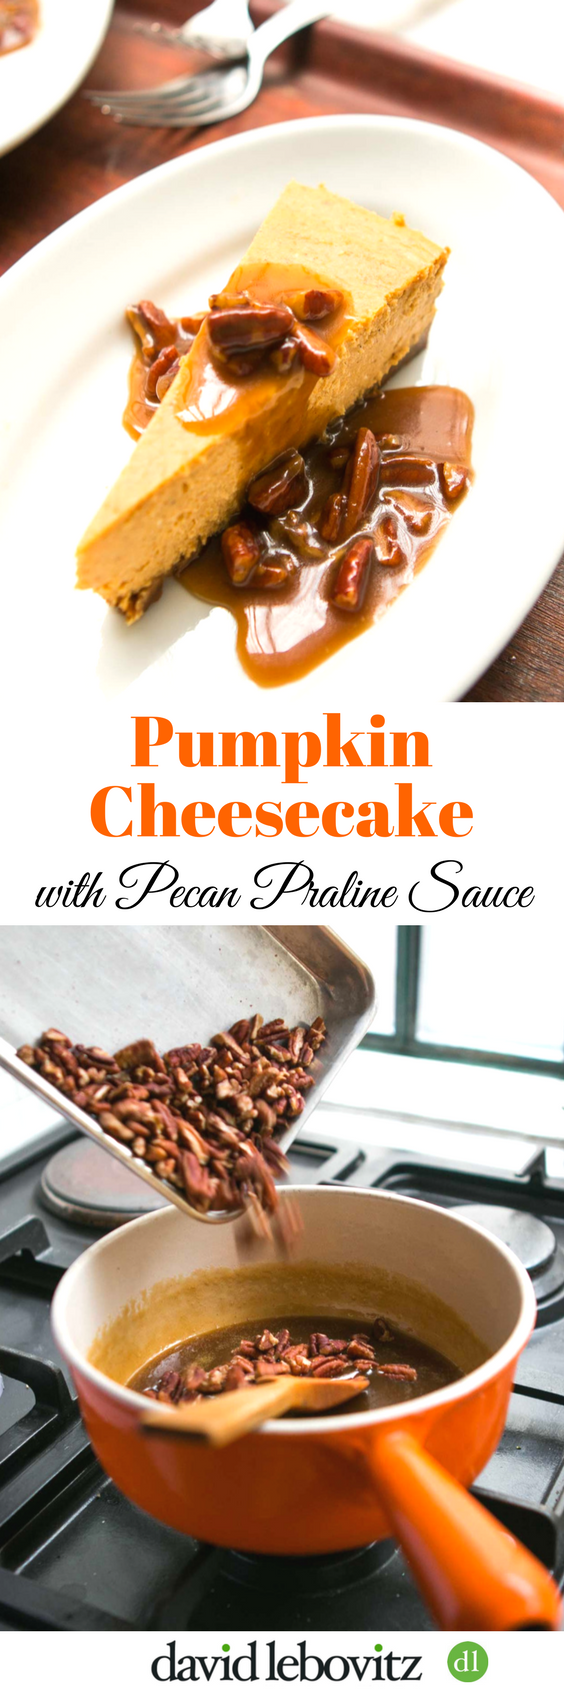 Pumpkin Cheesecake with Pecan Praline Sauce - a perfect holiday dessert!